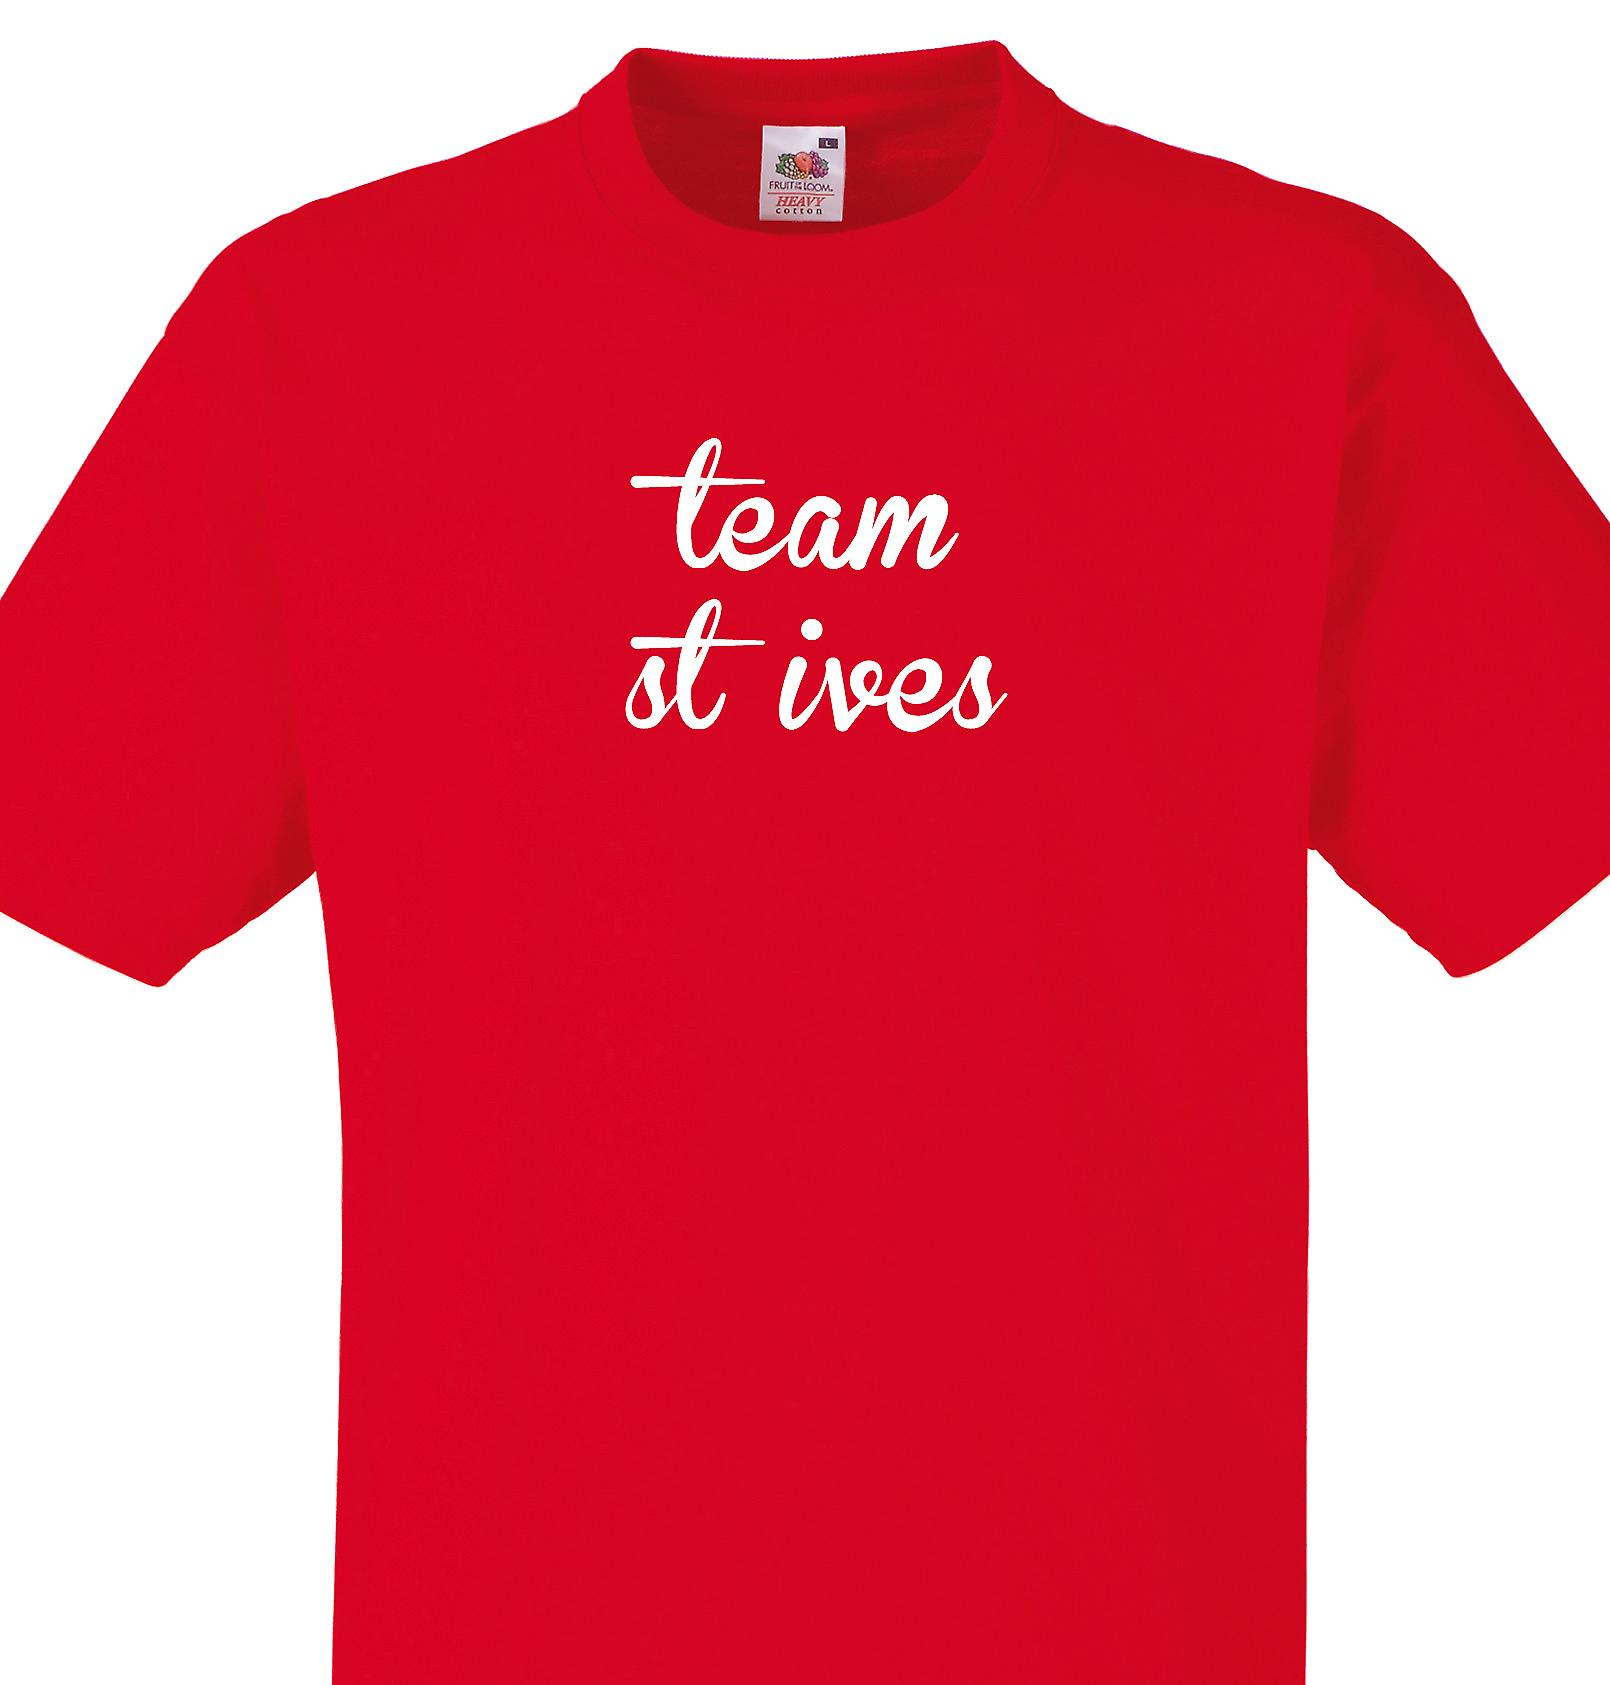 Team St ives Red T shirt